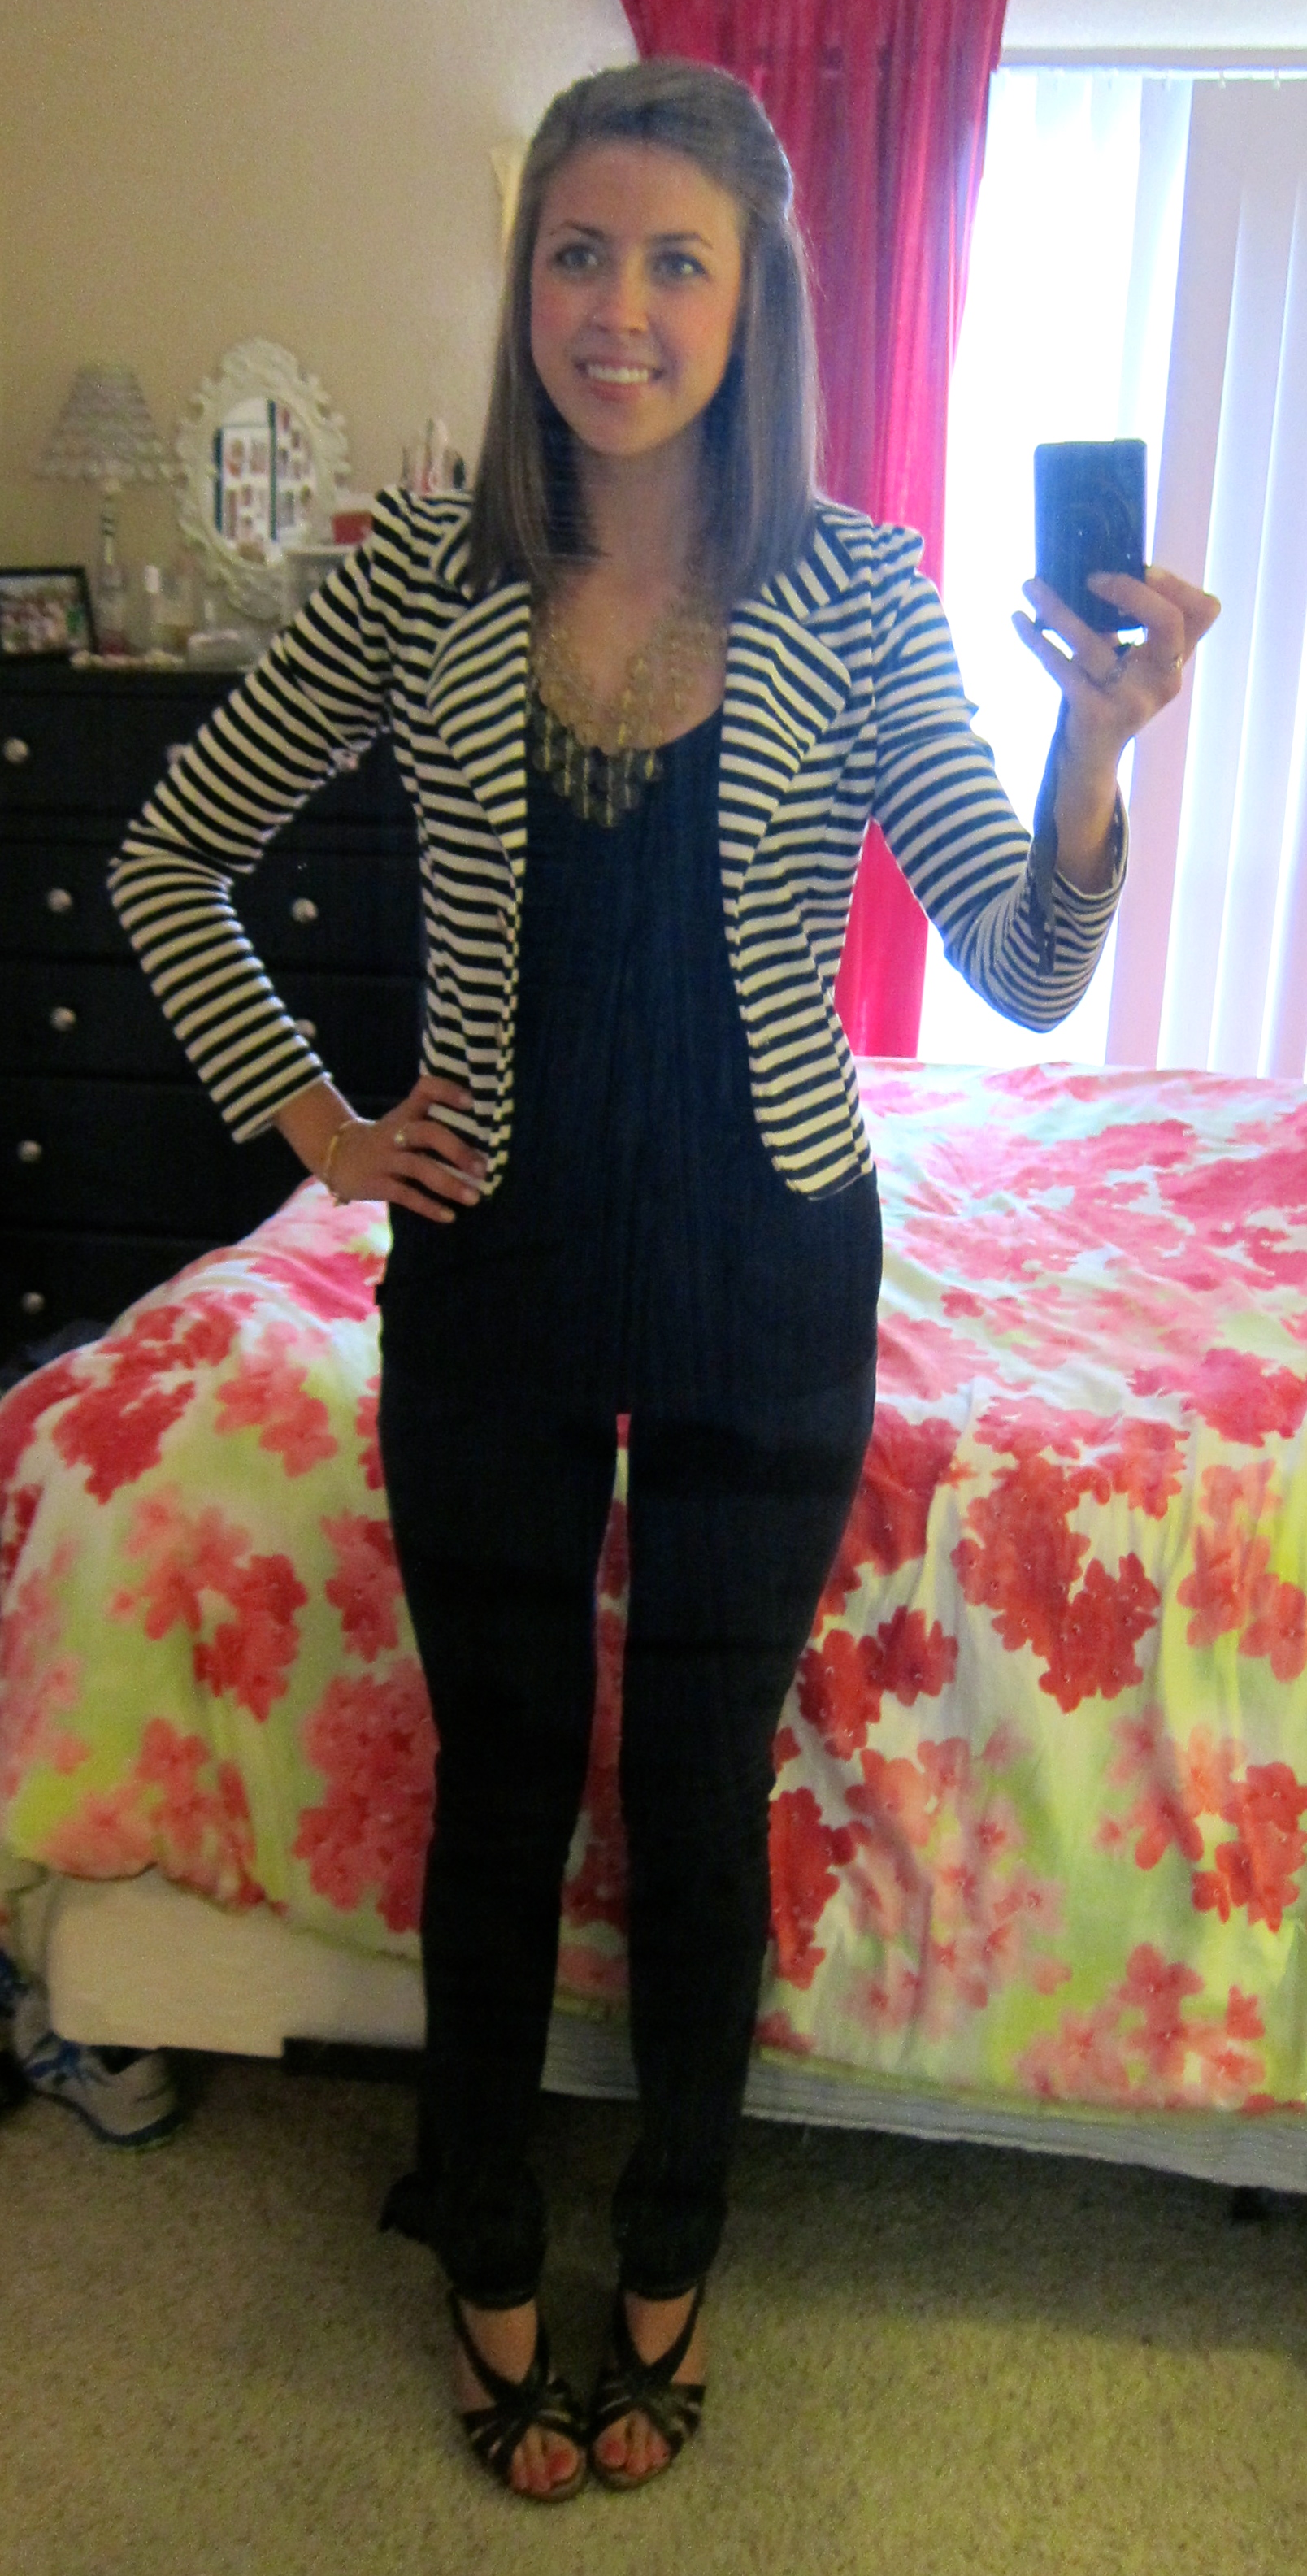 Black And White Striped Blazer Outfit Outfit 9.17.12 Striped Blazer